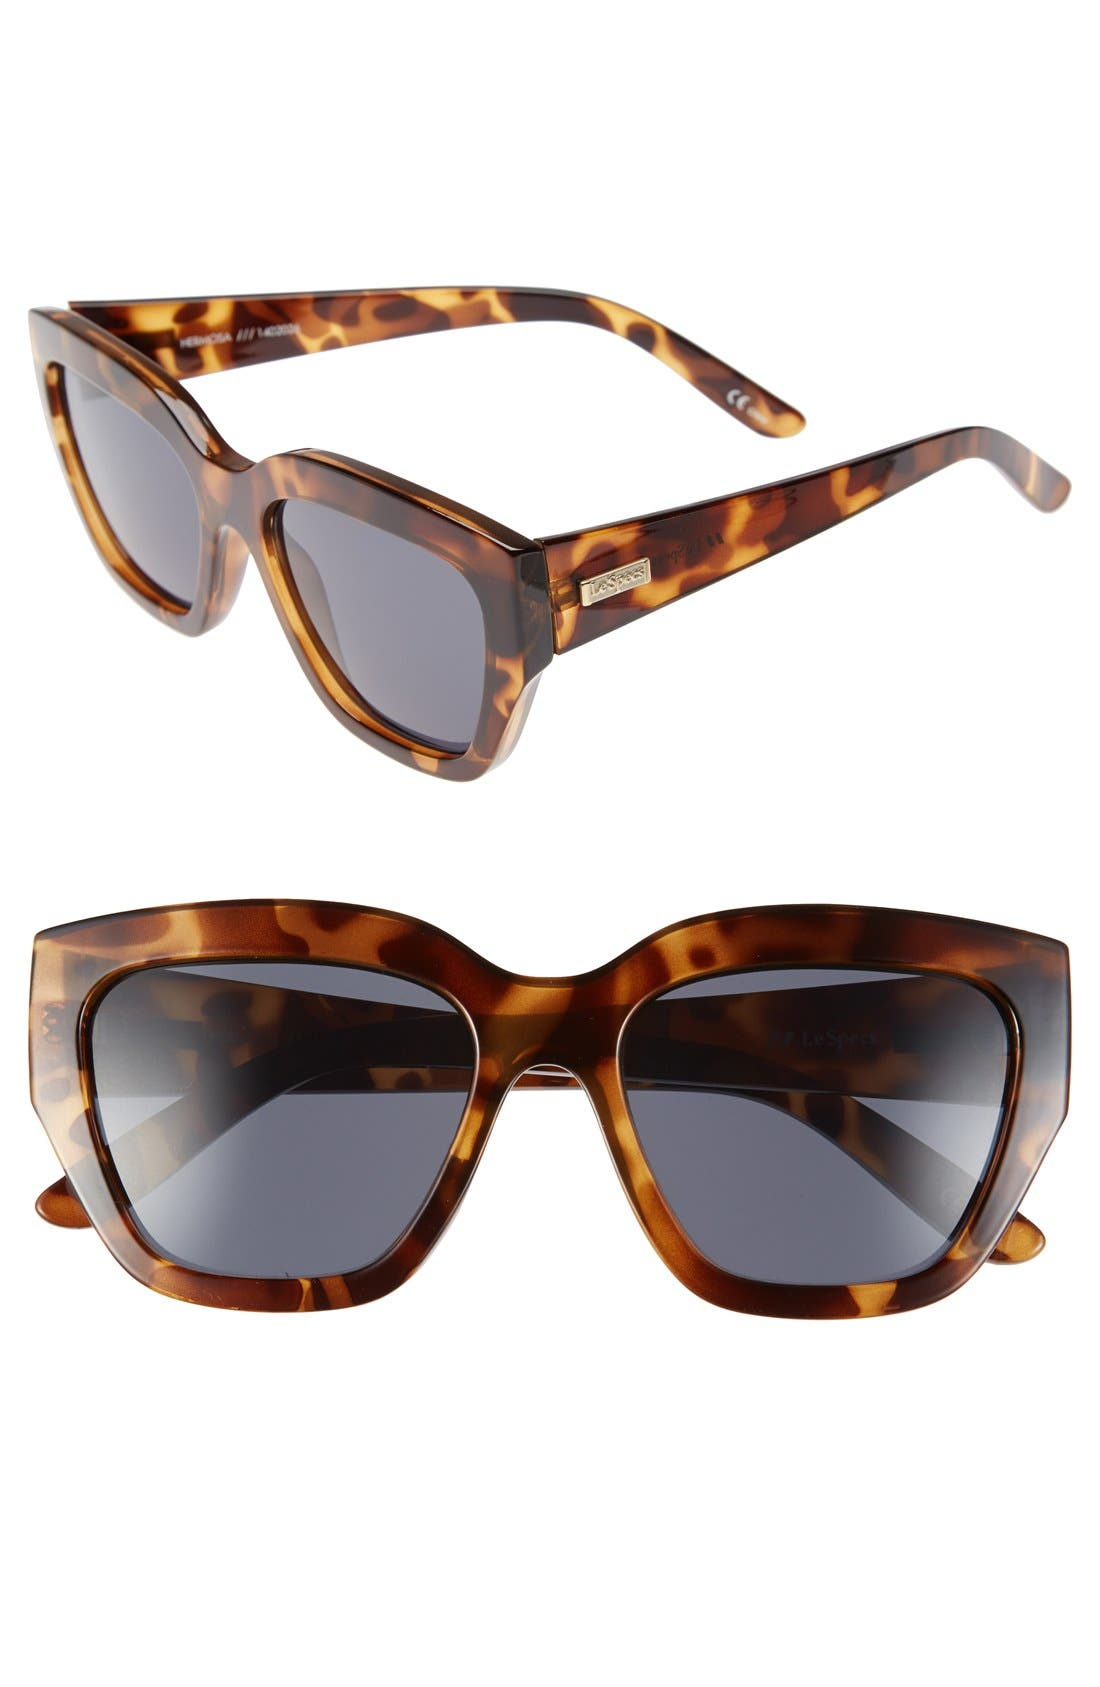 Main Image - Le Specs 'Hermosa' 54mm Oversized Cat Eye Sunglasses